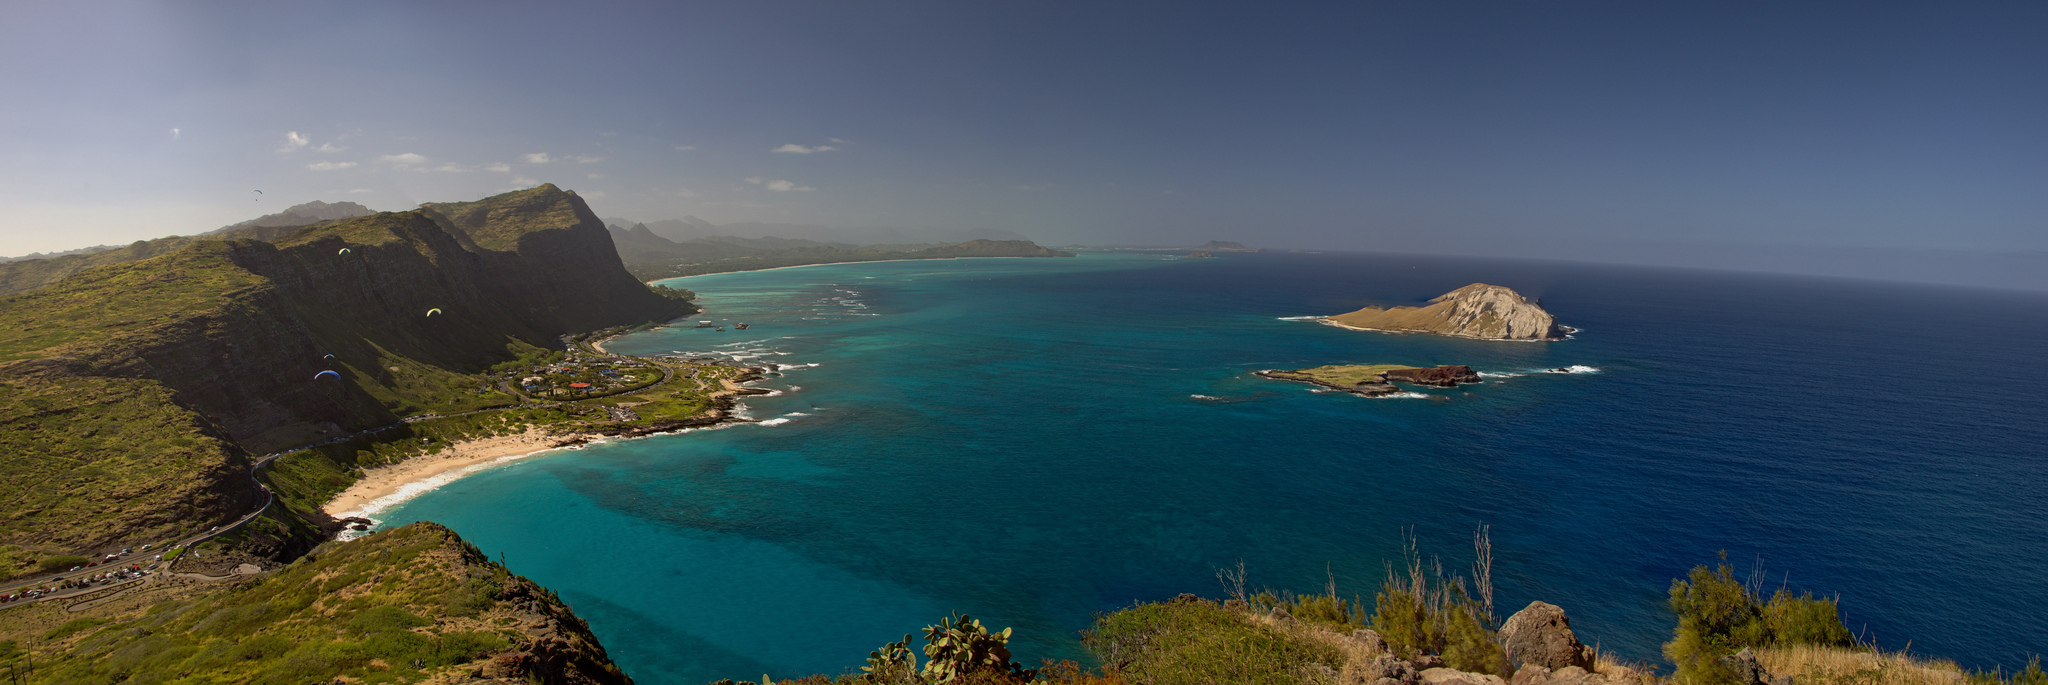 Makapuu Point 2